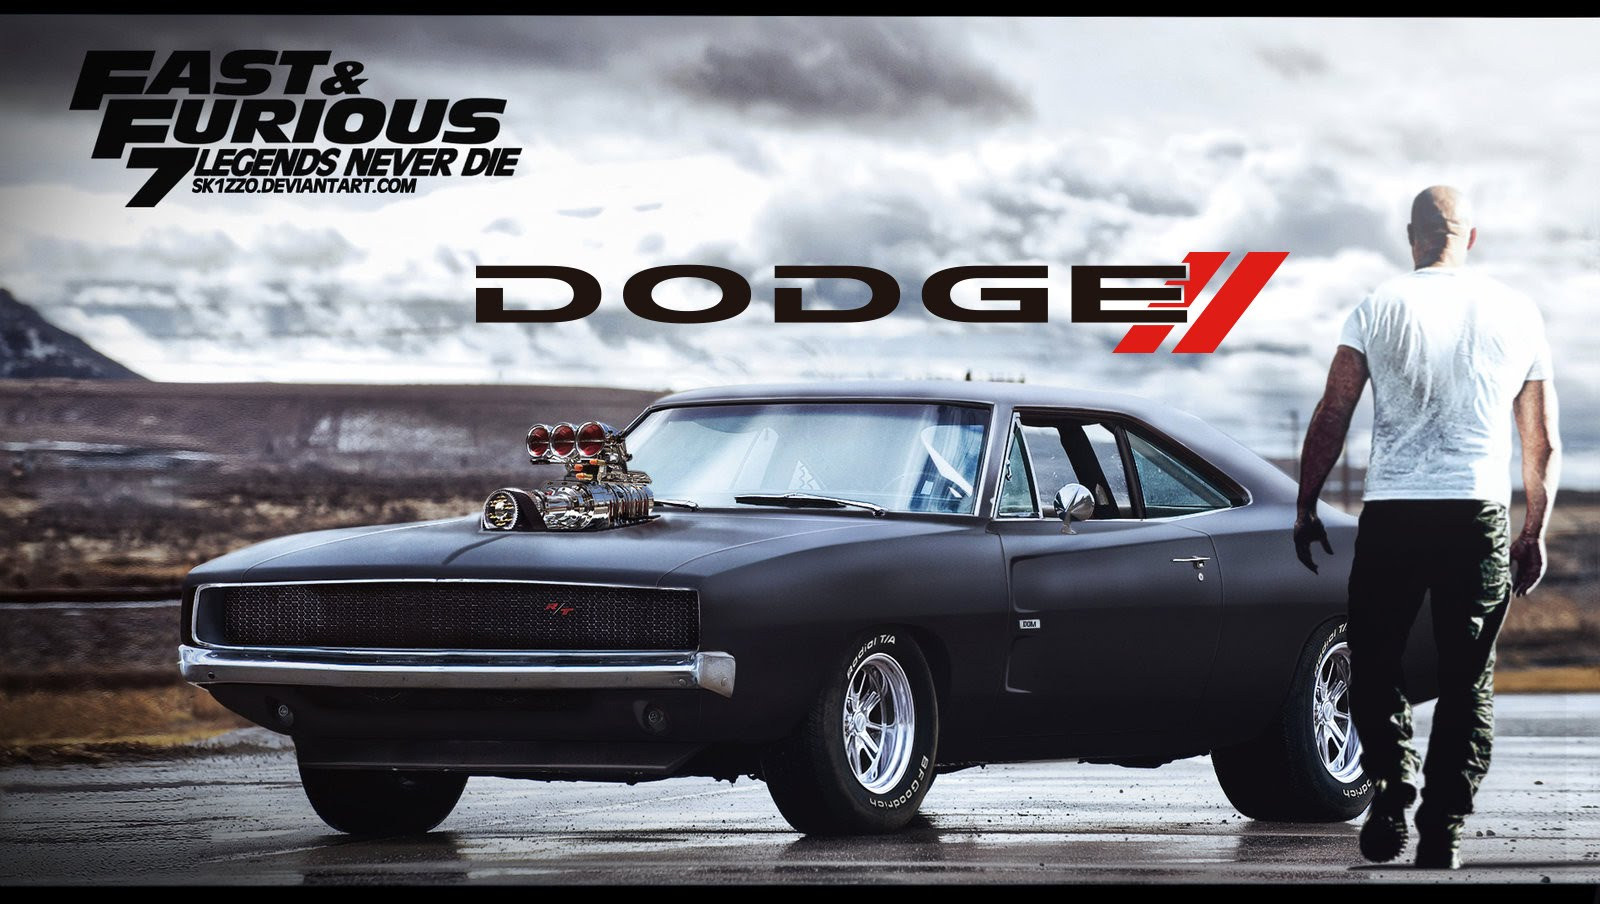 The Fast and the Furious – 1970 Dodge Charger